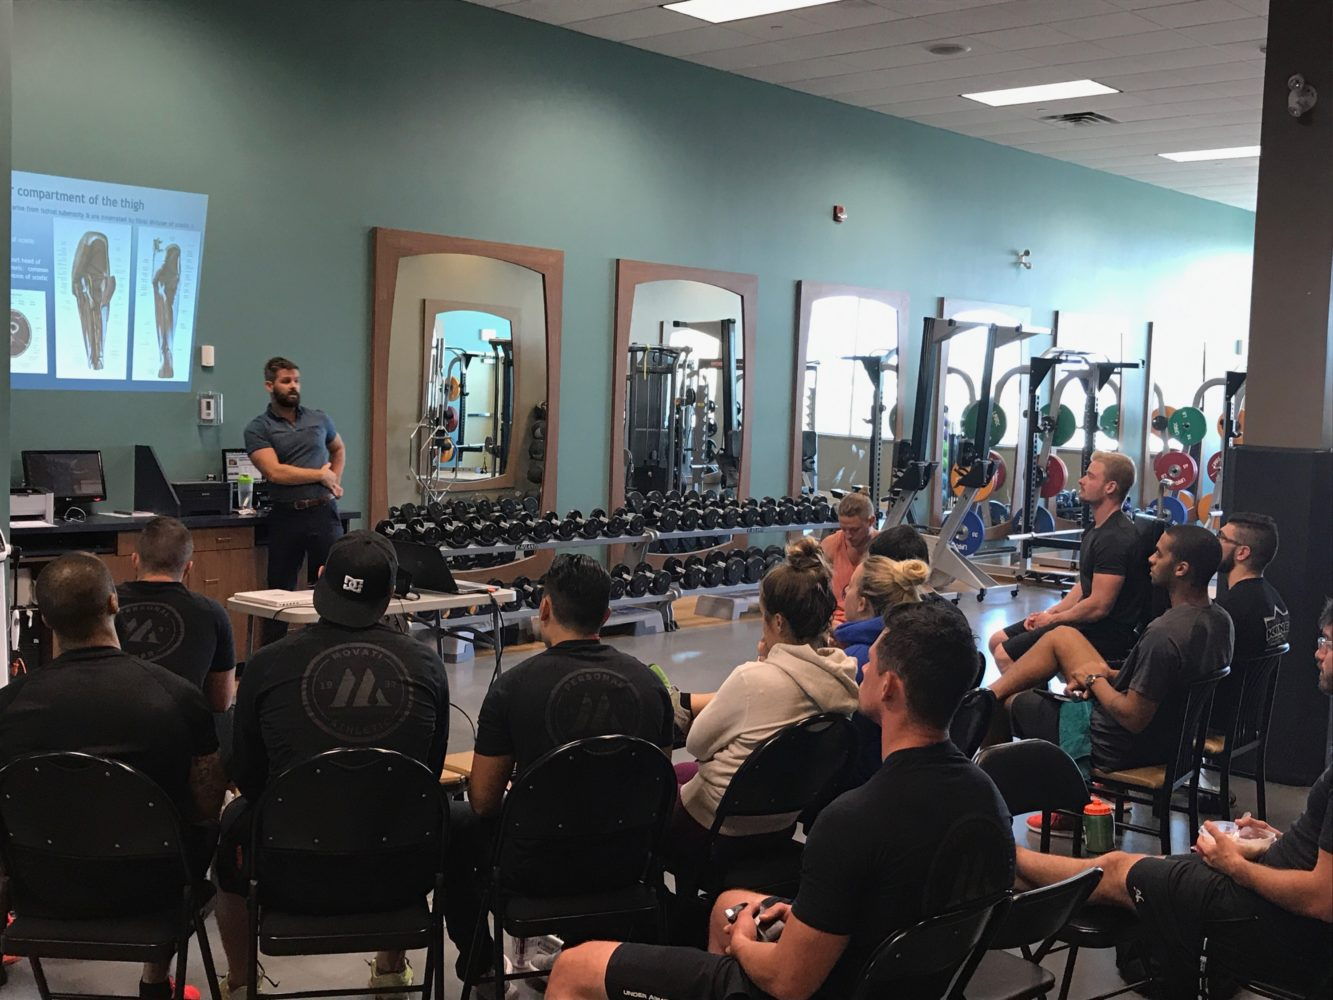 A man holding a seminar in front of a group of people sitting inside of a gym